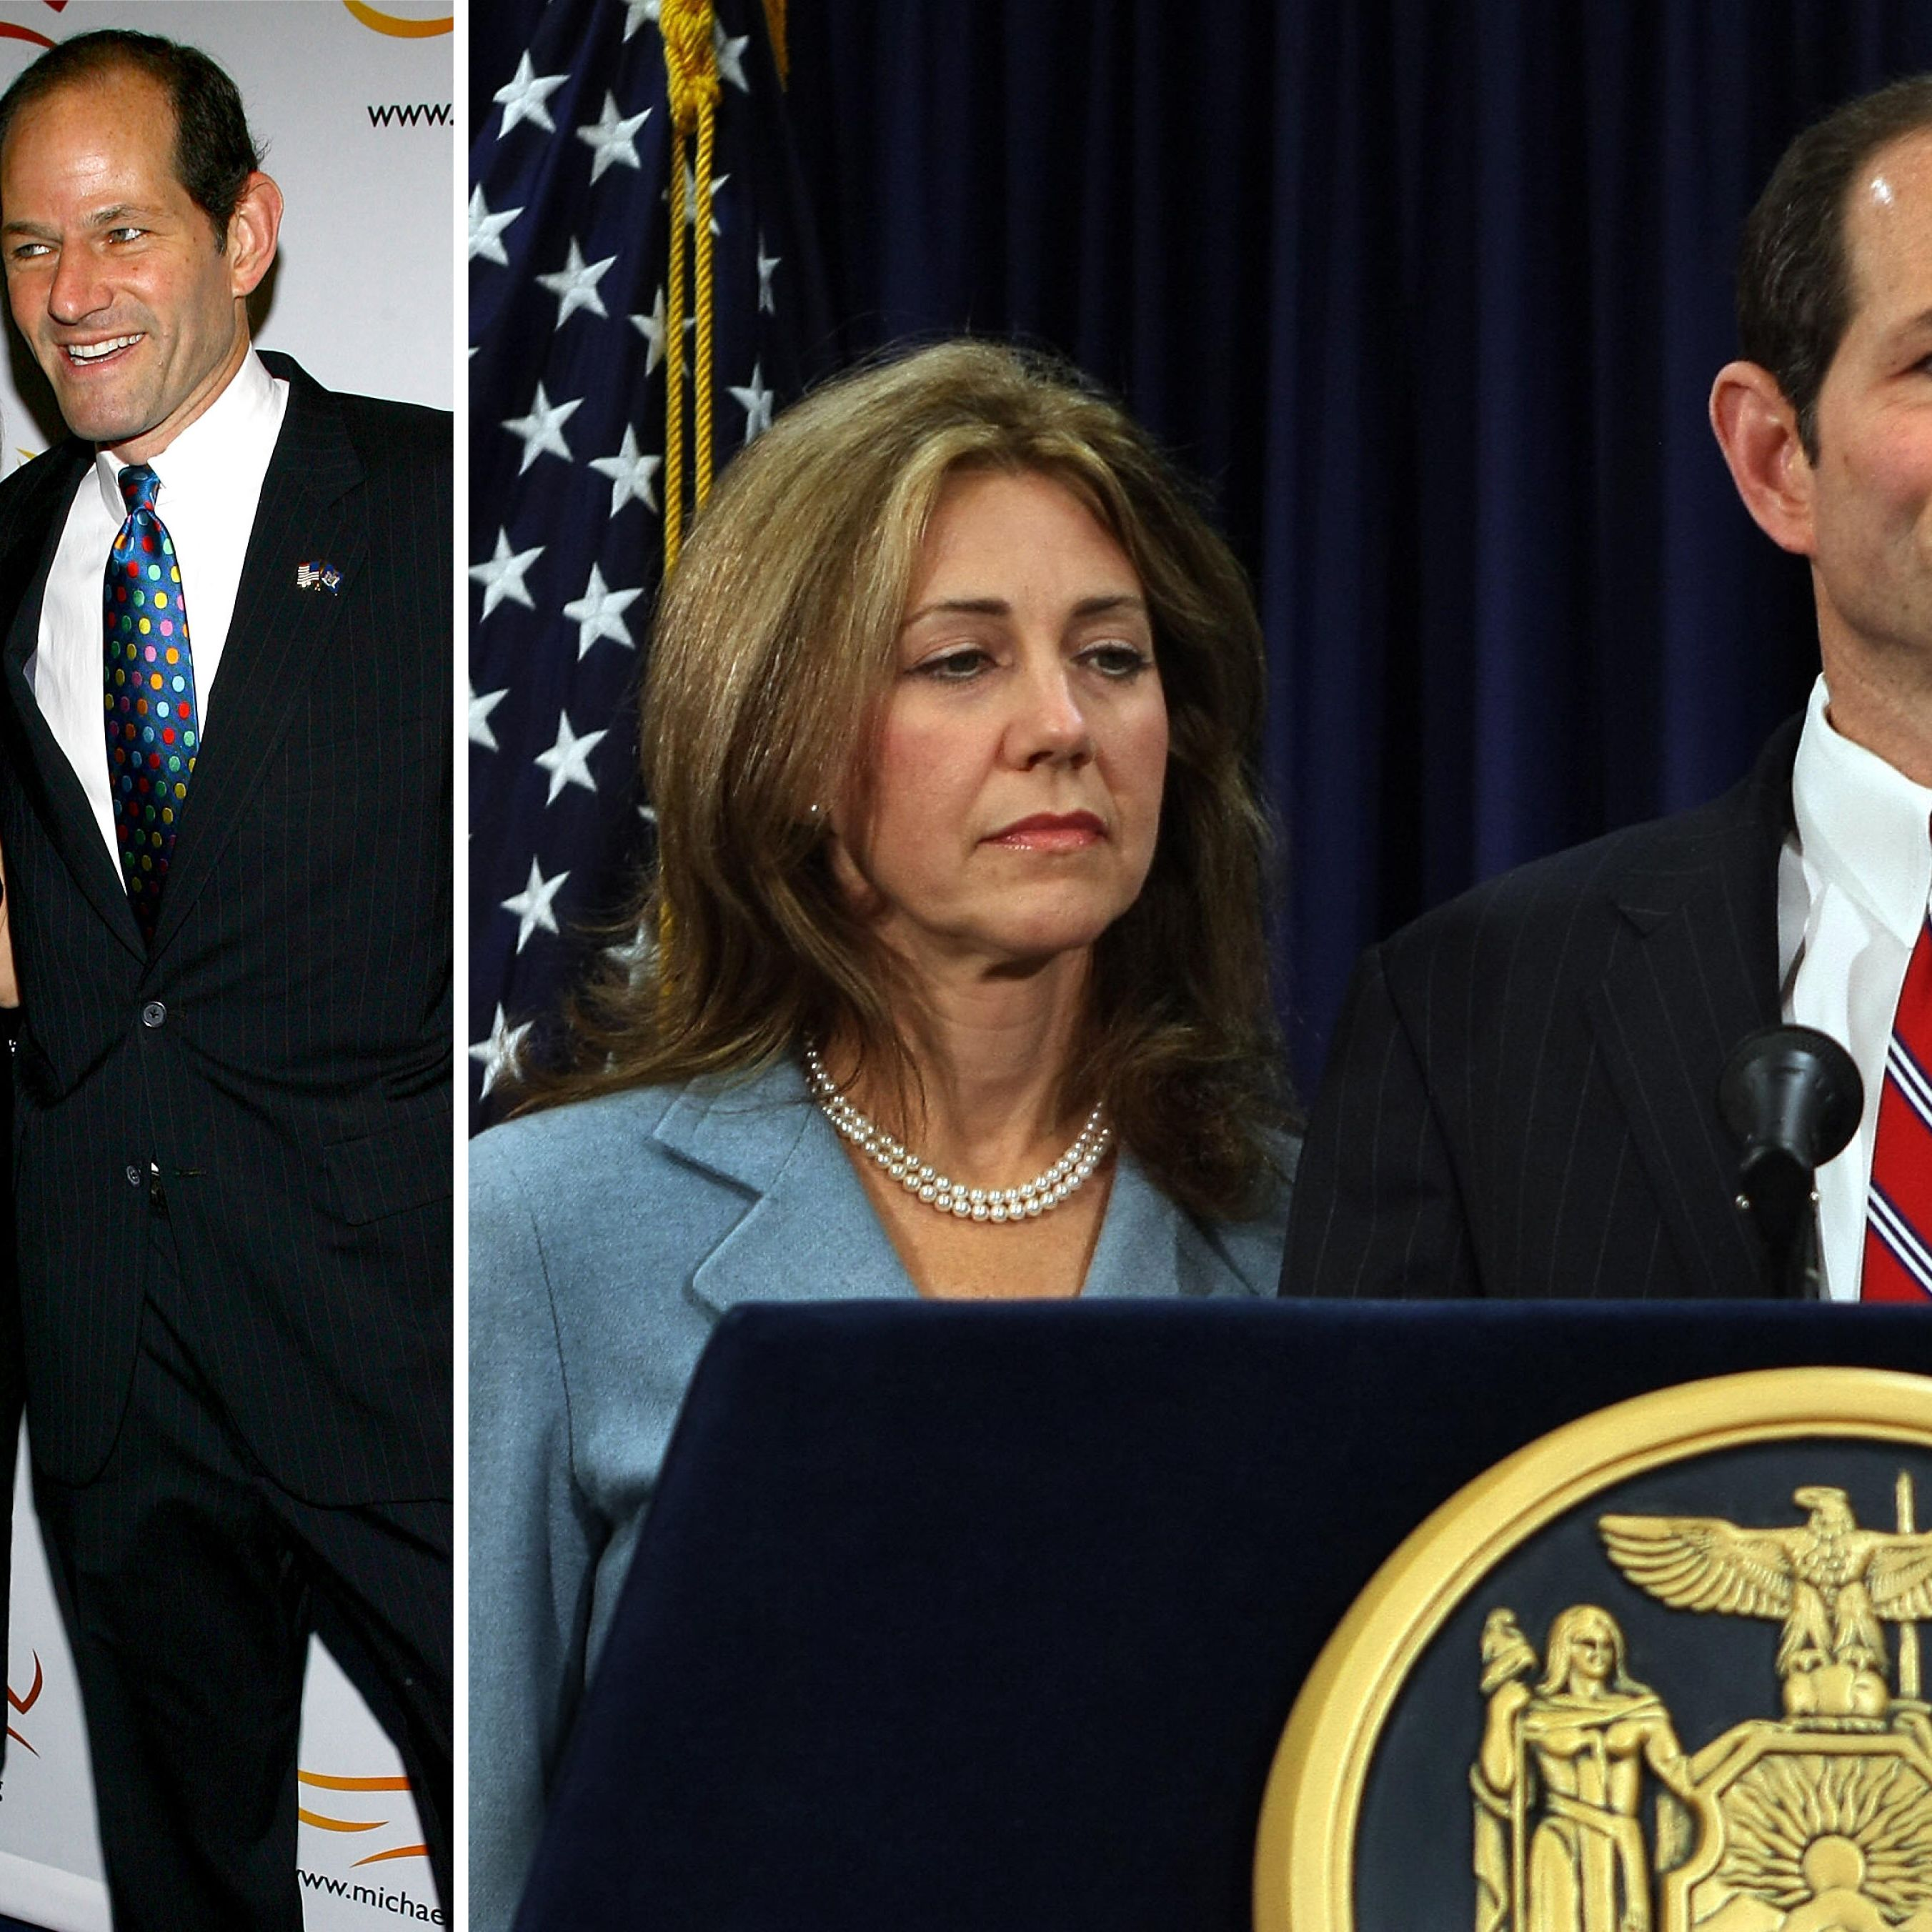 In 2006, before Silda Spitzer moved into the governor's mansion with her husband Eliot Spitzer, the Harvard Law grad spoke to Hilary Clinton, another political wife who met her husband at law school. Less than two years later, Silda was surprised to be following Hilary's lead again, standing by a man in a moment of national shame, after it was reported that he had spent more than $80,000 on high-priced call girls over the course of his terms as both Attorney General and Governor of New York.To widespread amazement, the couple remained married for more than five years after that day, until recent news of the ex-Governor's affair with a spokesman for New York City mayor Bill de Blasio led to the announcement of their intention to divorce.Volcanic explosivity index: Deceptive. Silda's stance—her incredible decision to stand by supportively as her husband resigned in disgrace—was one of the most memorable events in the turbulent New York political scene in decades, a resonant moment that inspired the hit TV series The Good Wife.